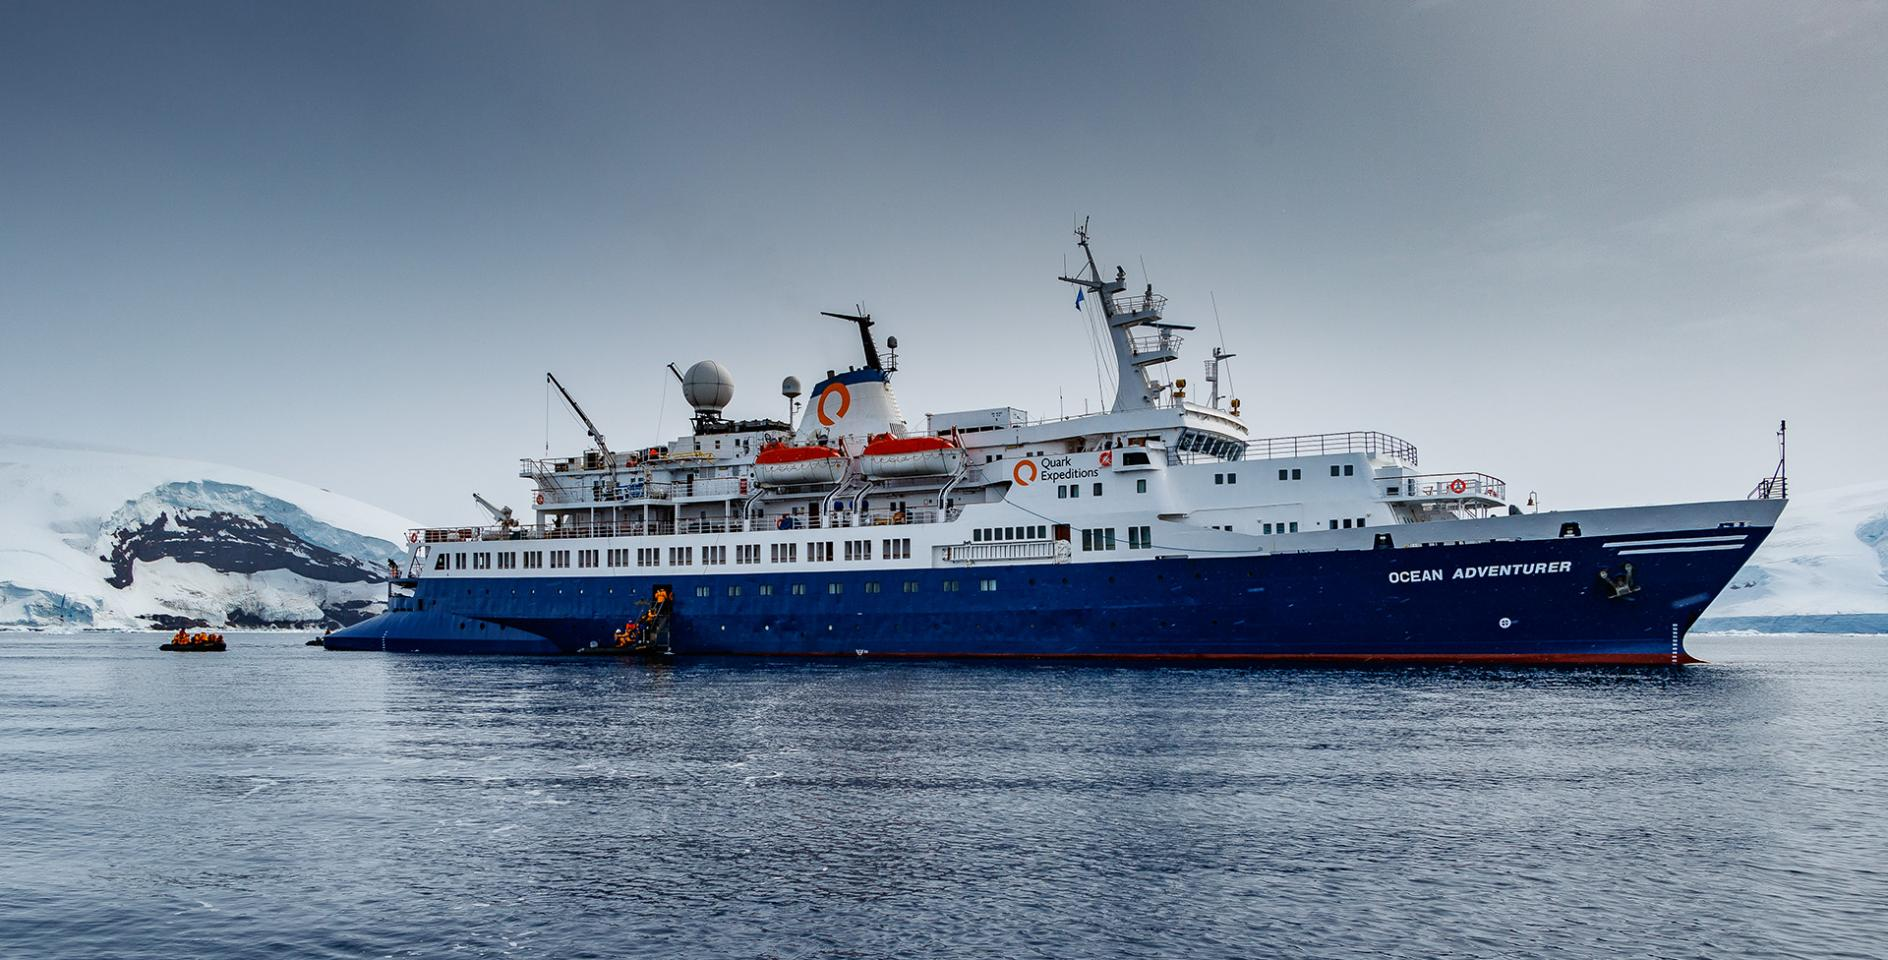 Ocean Adventurer in Antarctica